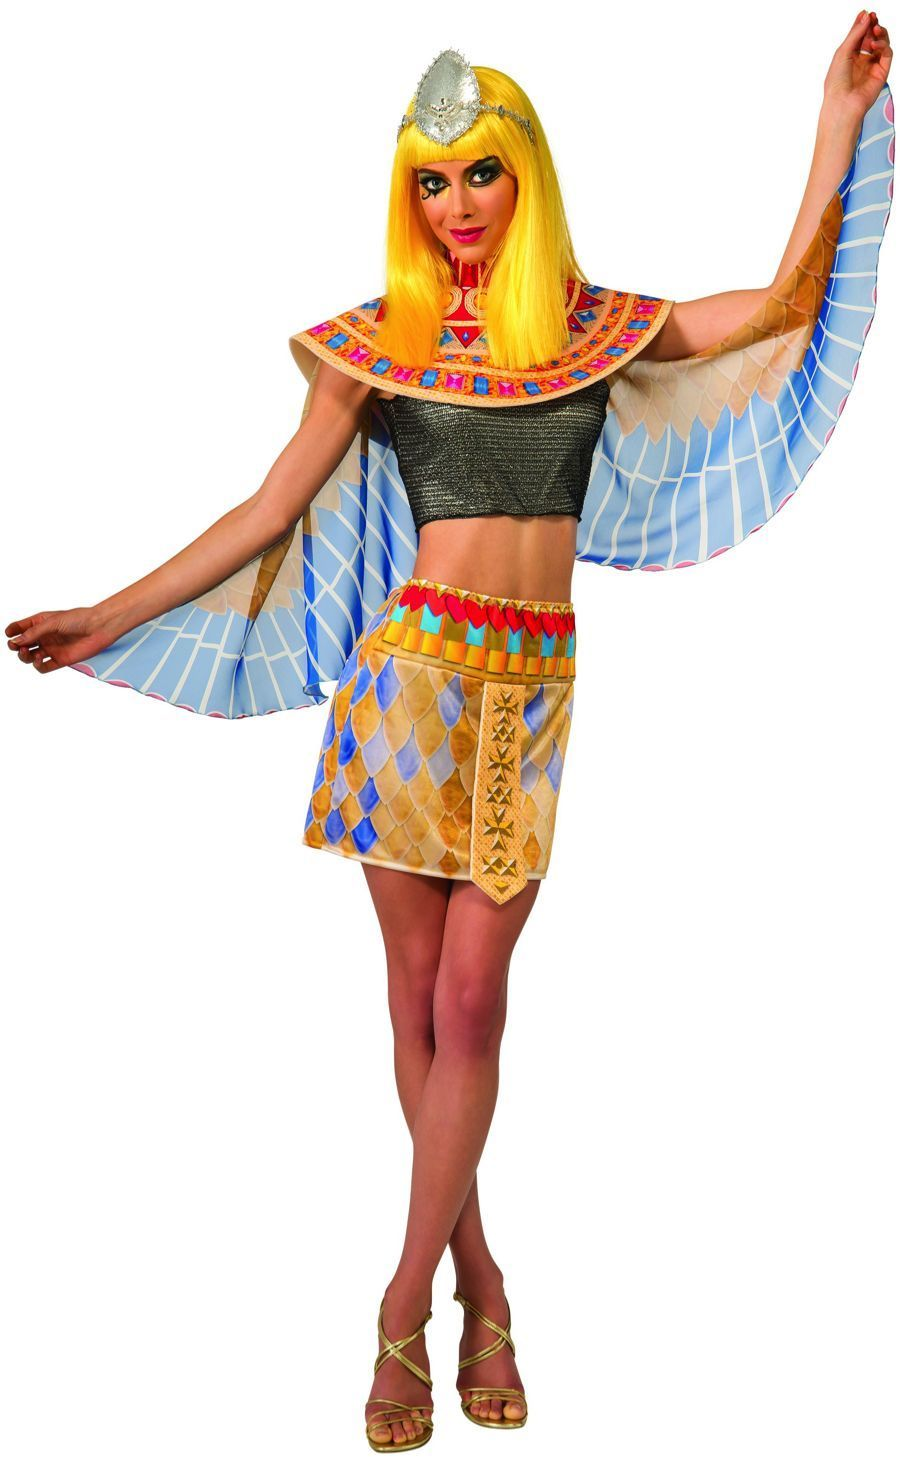 Image 1 of Licensed Katy Perry Dark Horse Rock Star Diva Costume Adult Patra Singer Egypt -